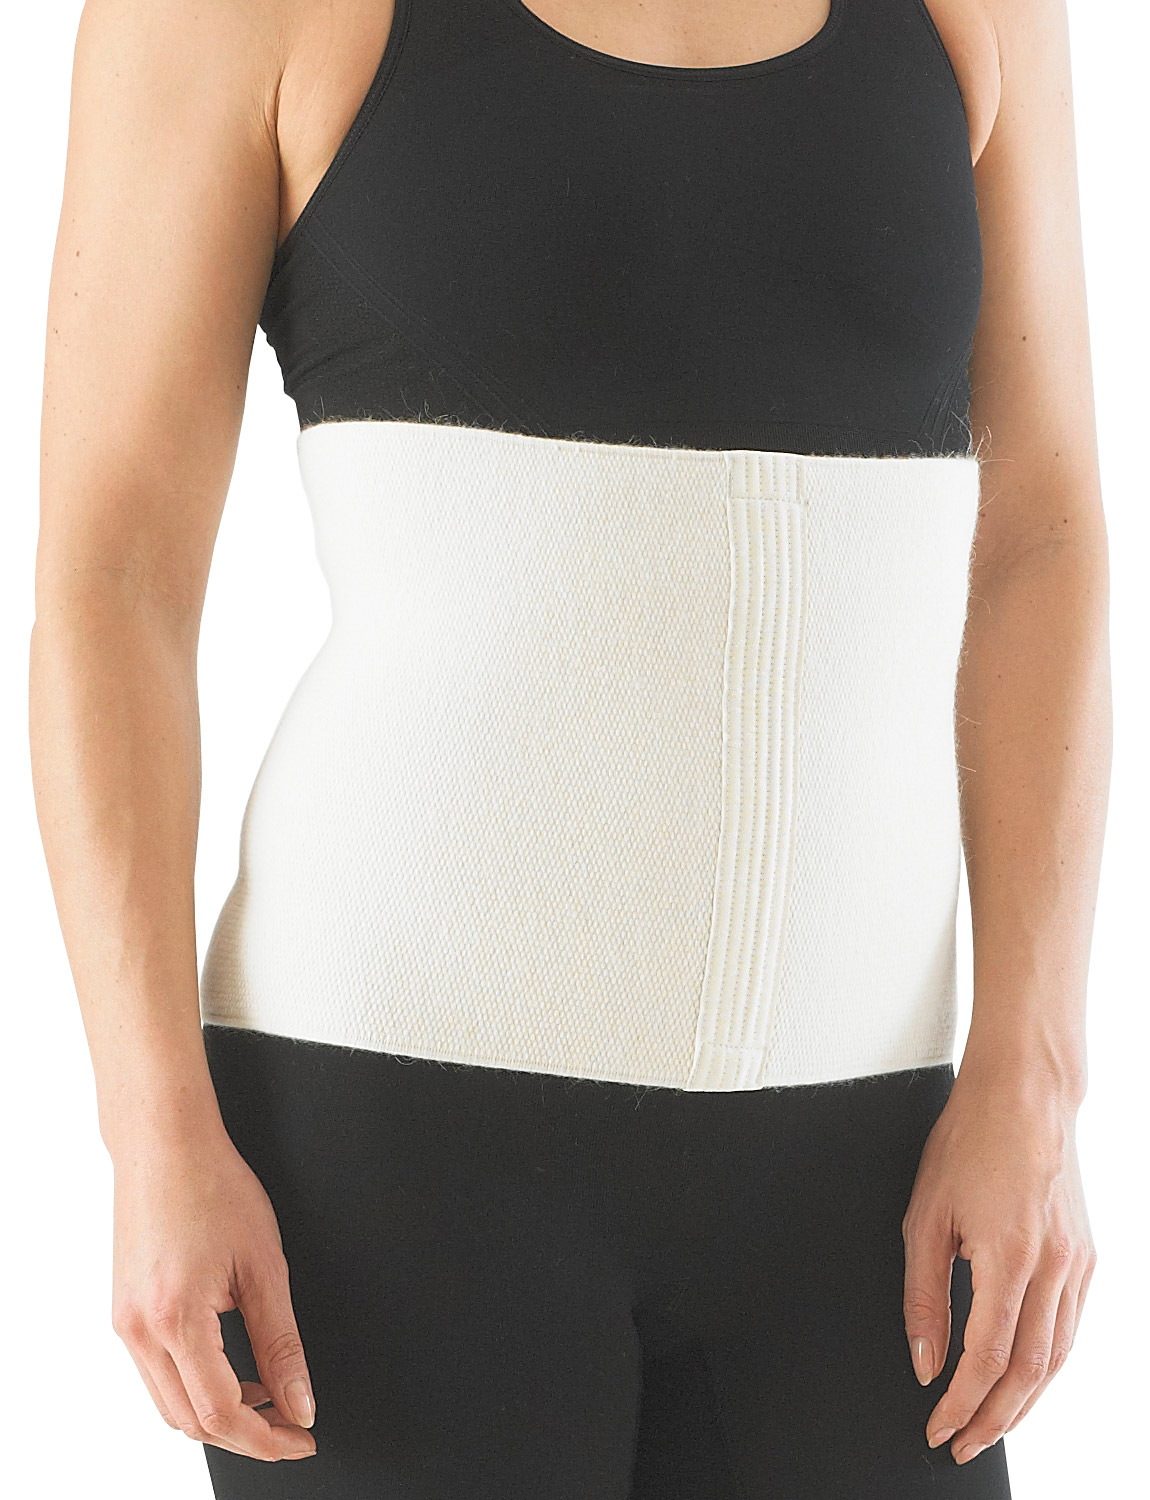 114 -ANGORA & WOOL WAIST WARMER & SUPPORT  Angora & Wool Waist Warmer & Support is designed with naturally insulating material which helps to retain heat in the lumbar region to keep muscles and joints warm.